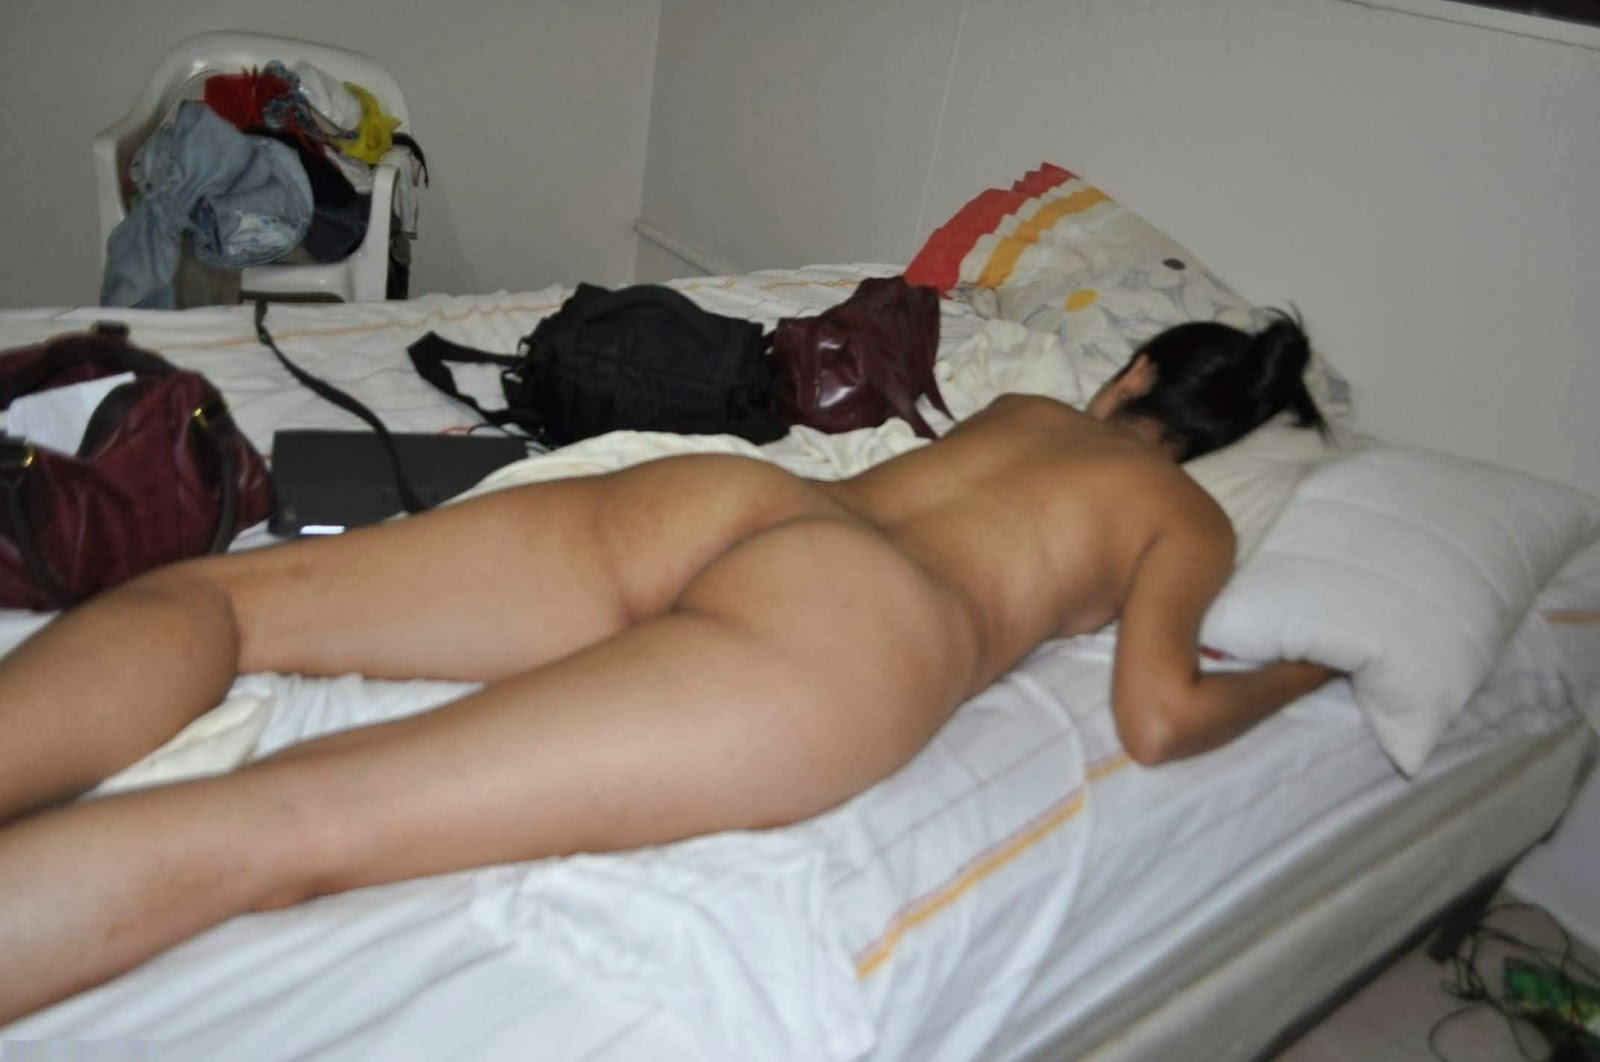 Big booty girls in sleep pics there's nothing